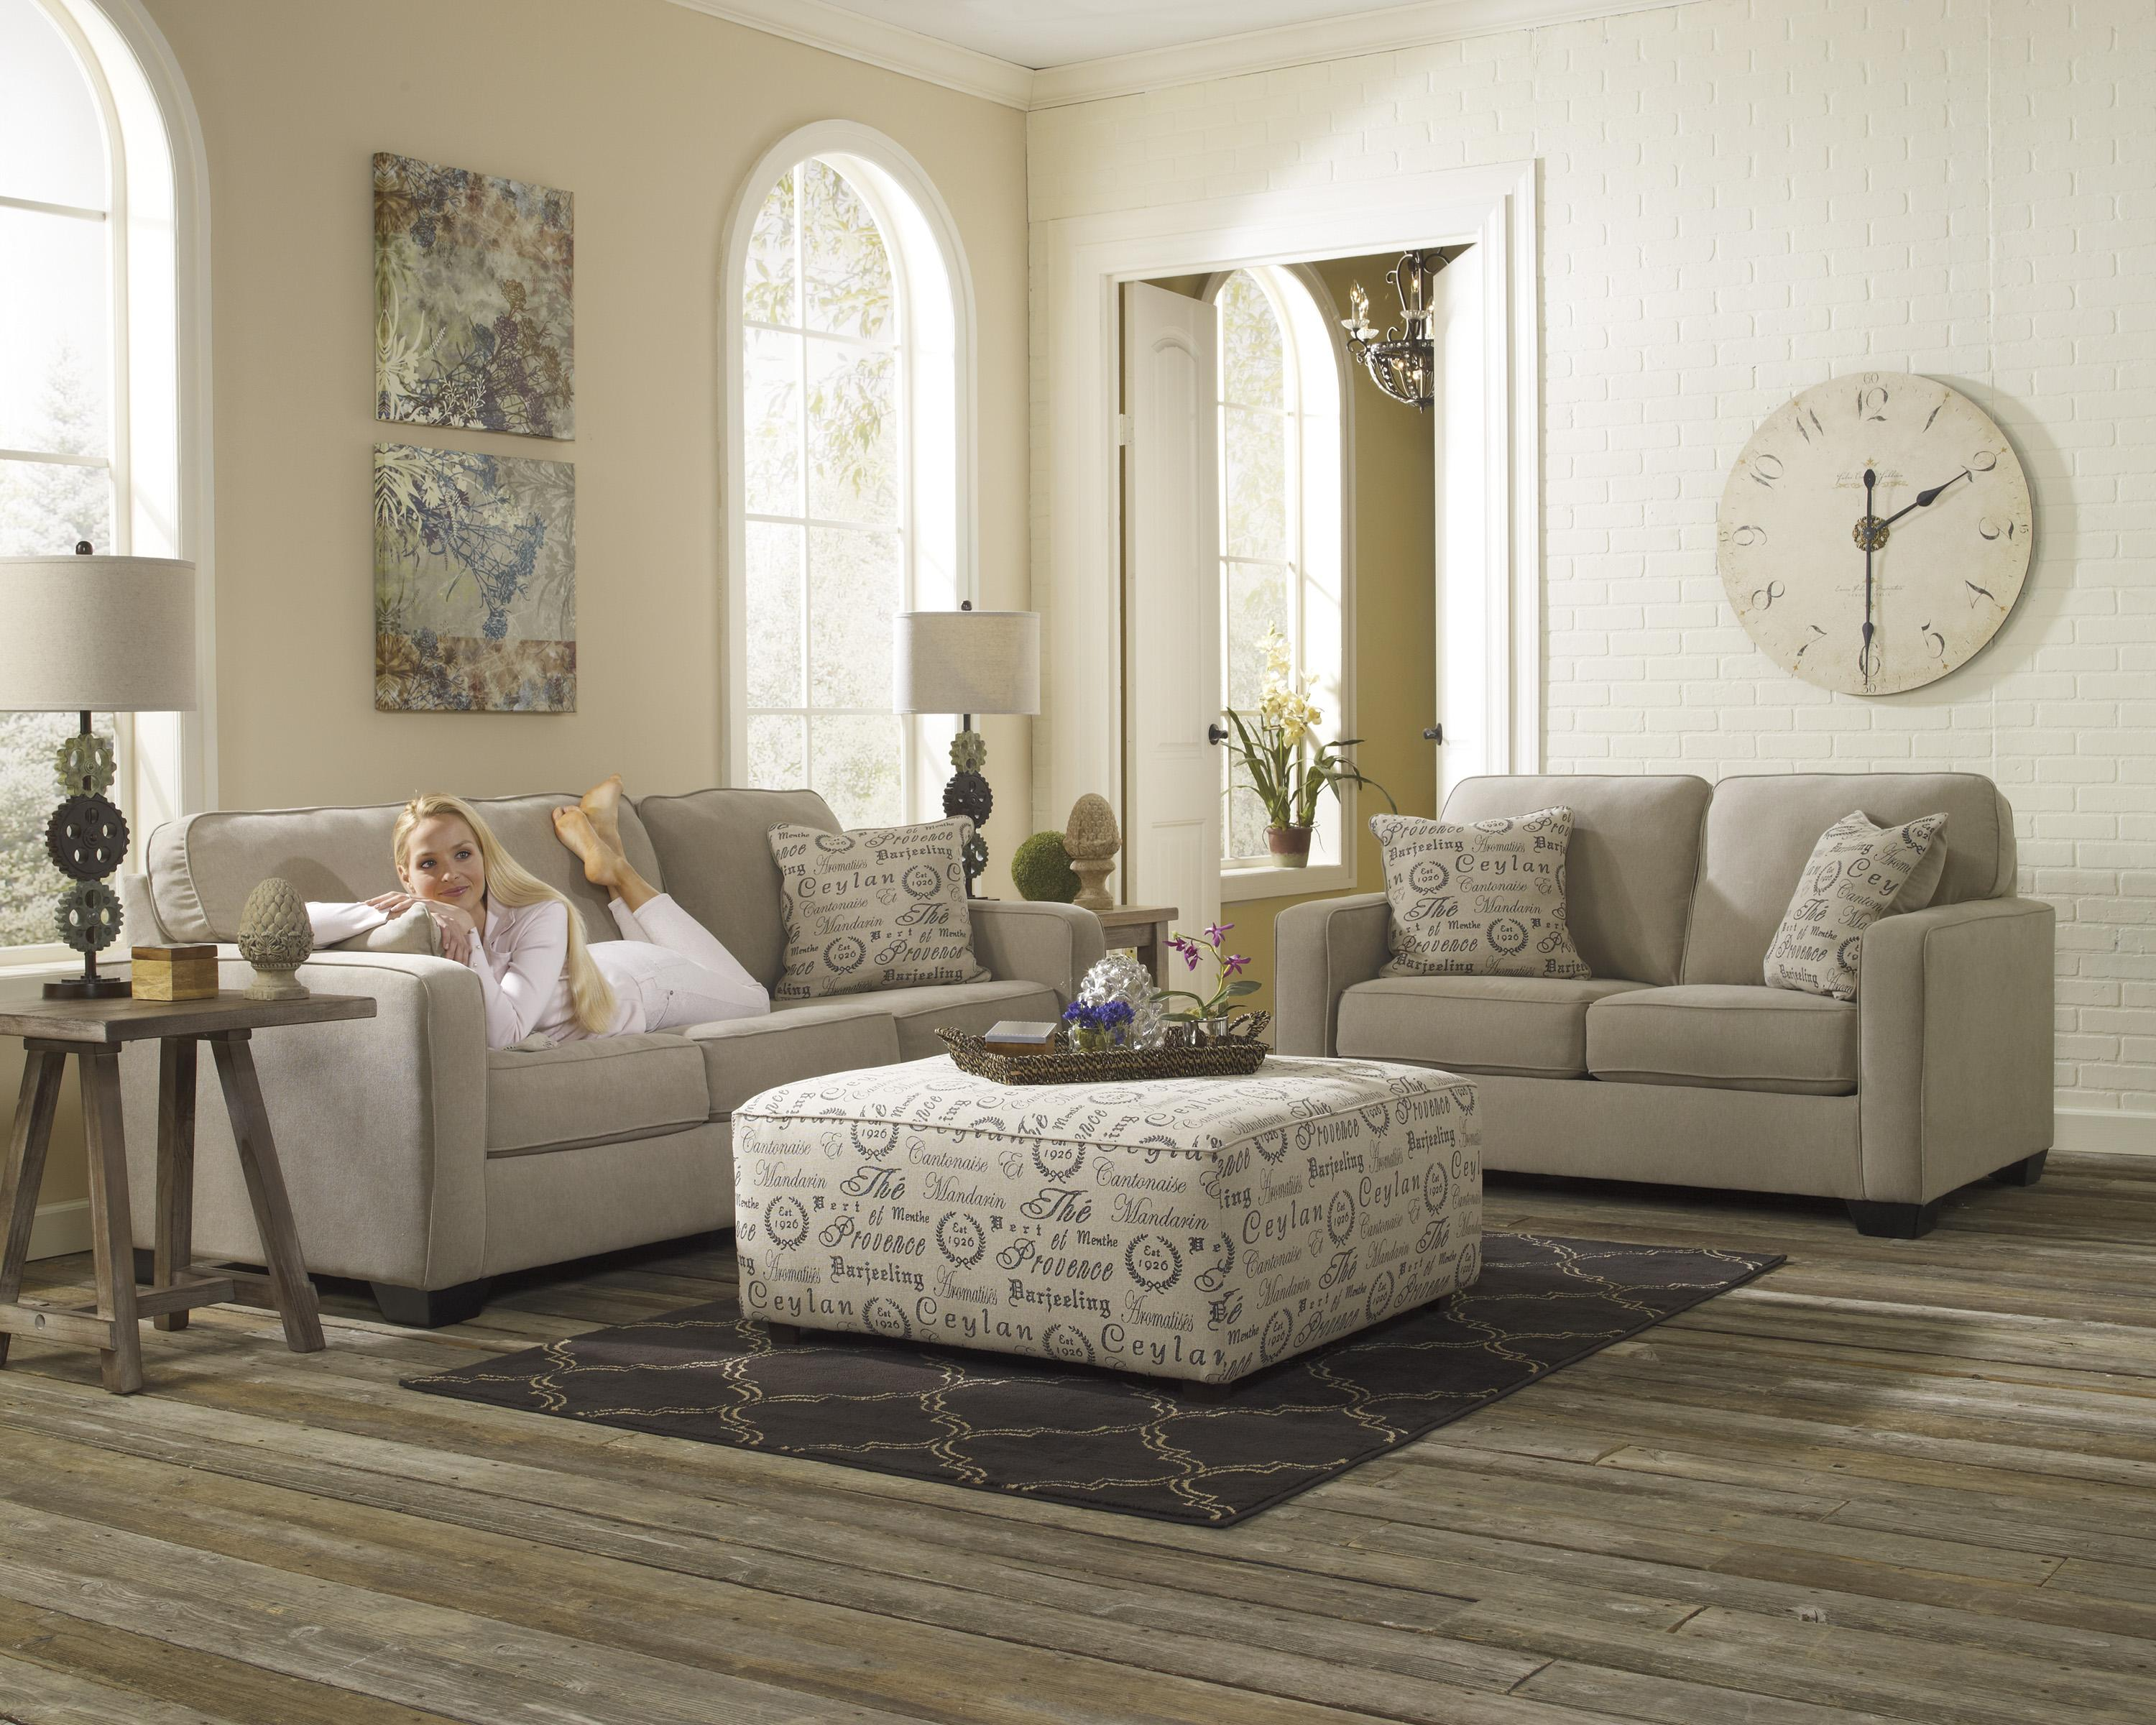 Alenya - Quartz Stationary Living Room Group by Signature Design by Ashley at Standard Furniture